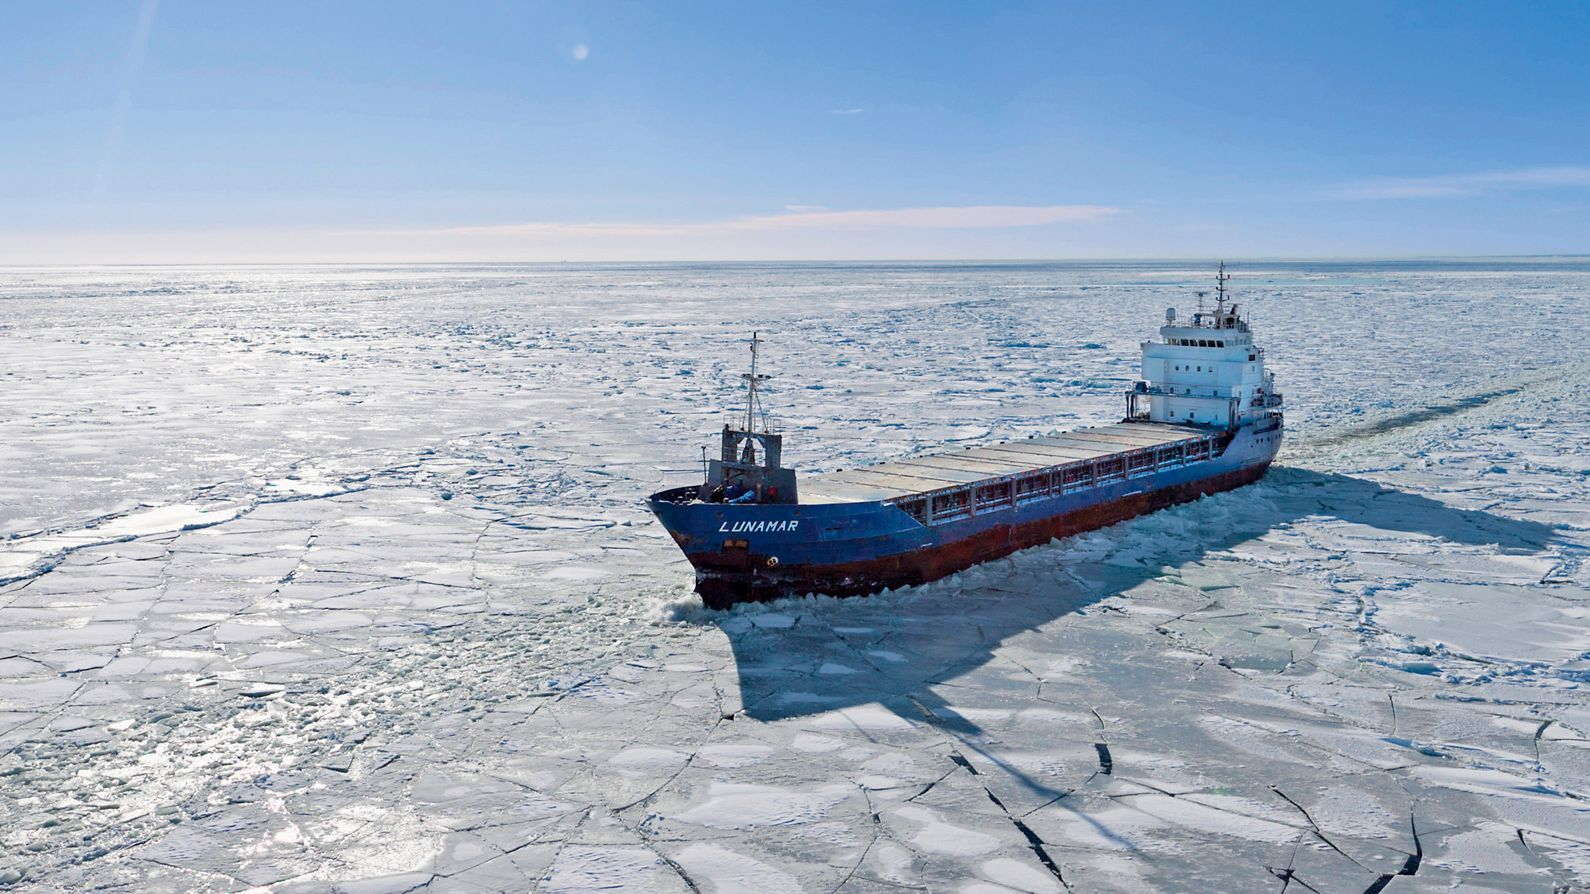 ICEFLEX Cable from Nexans Marine & Offshore Power Cable Meets Arctic Challenge